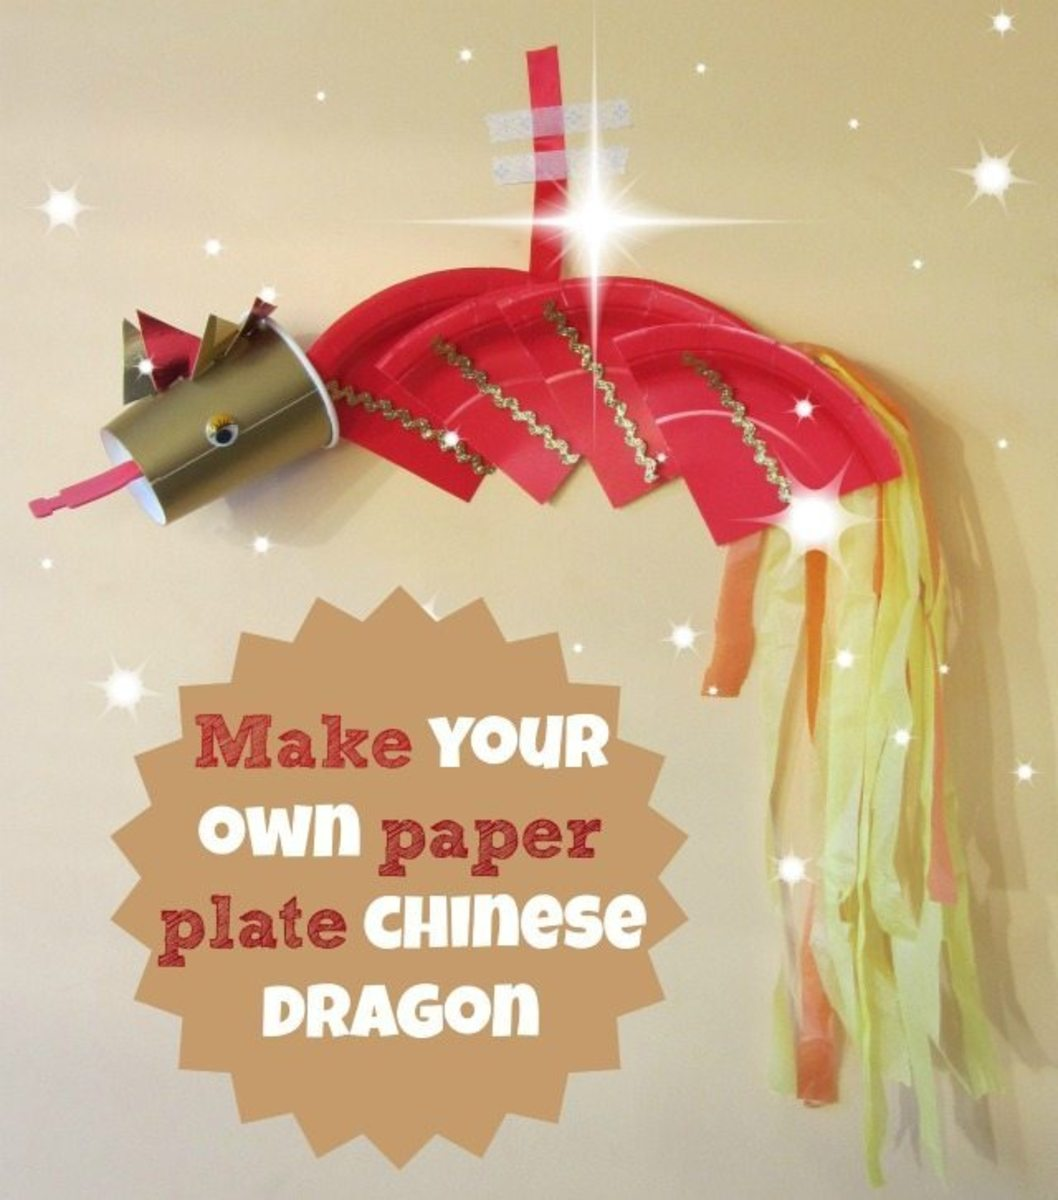 paper-plate-chinese-dragon-bostik-craft.jpg